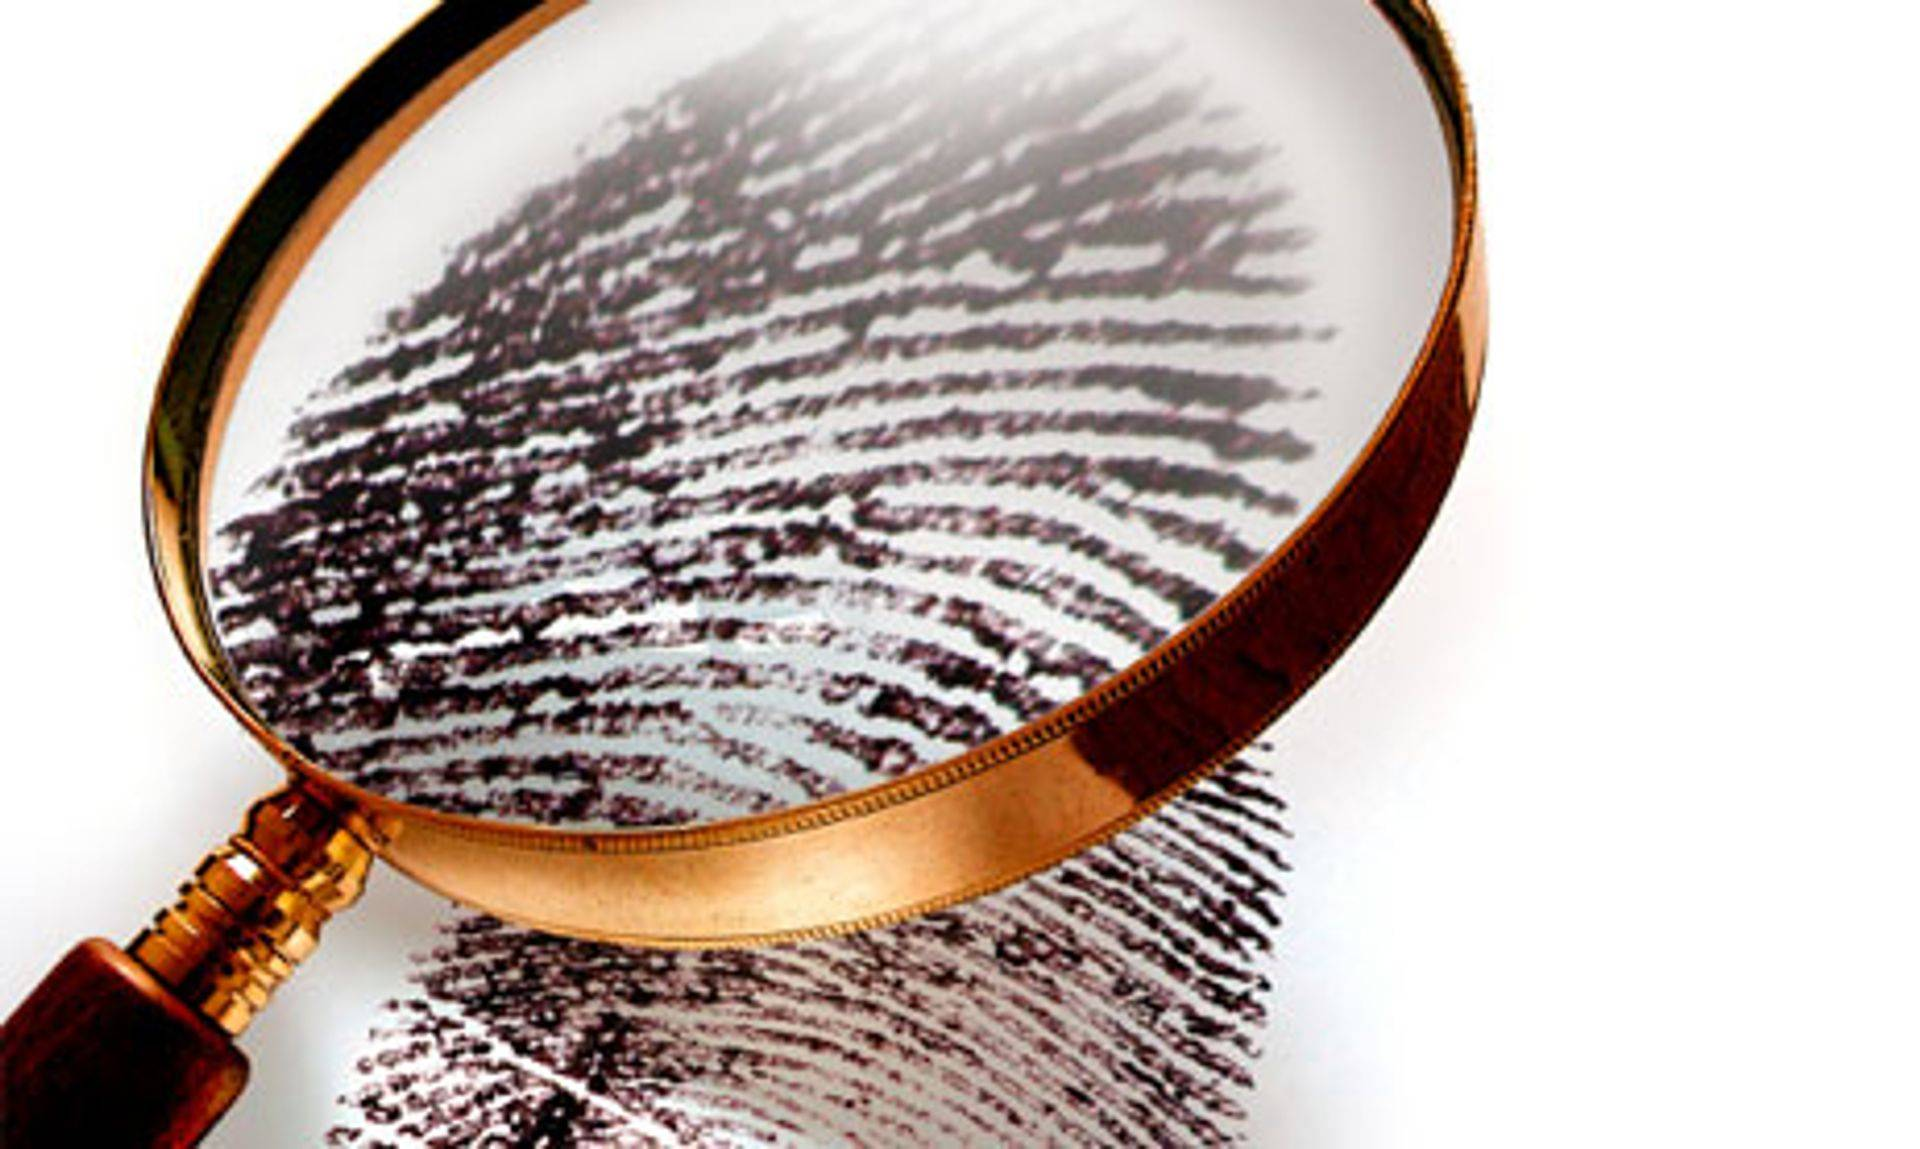 private investigators Leave no clue behind protection services